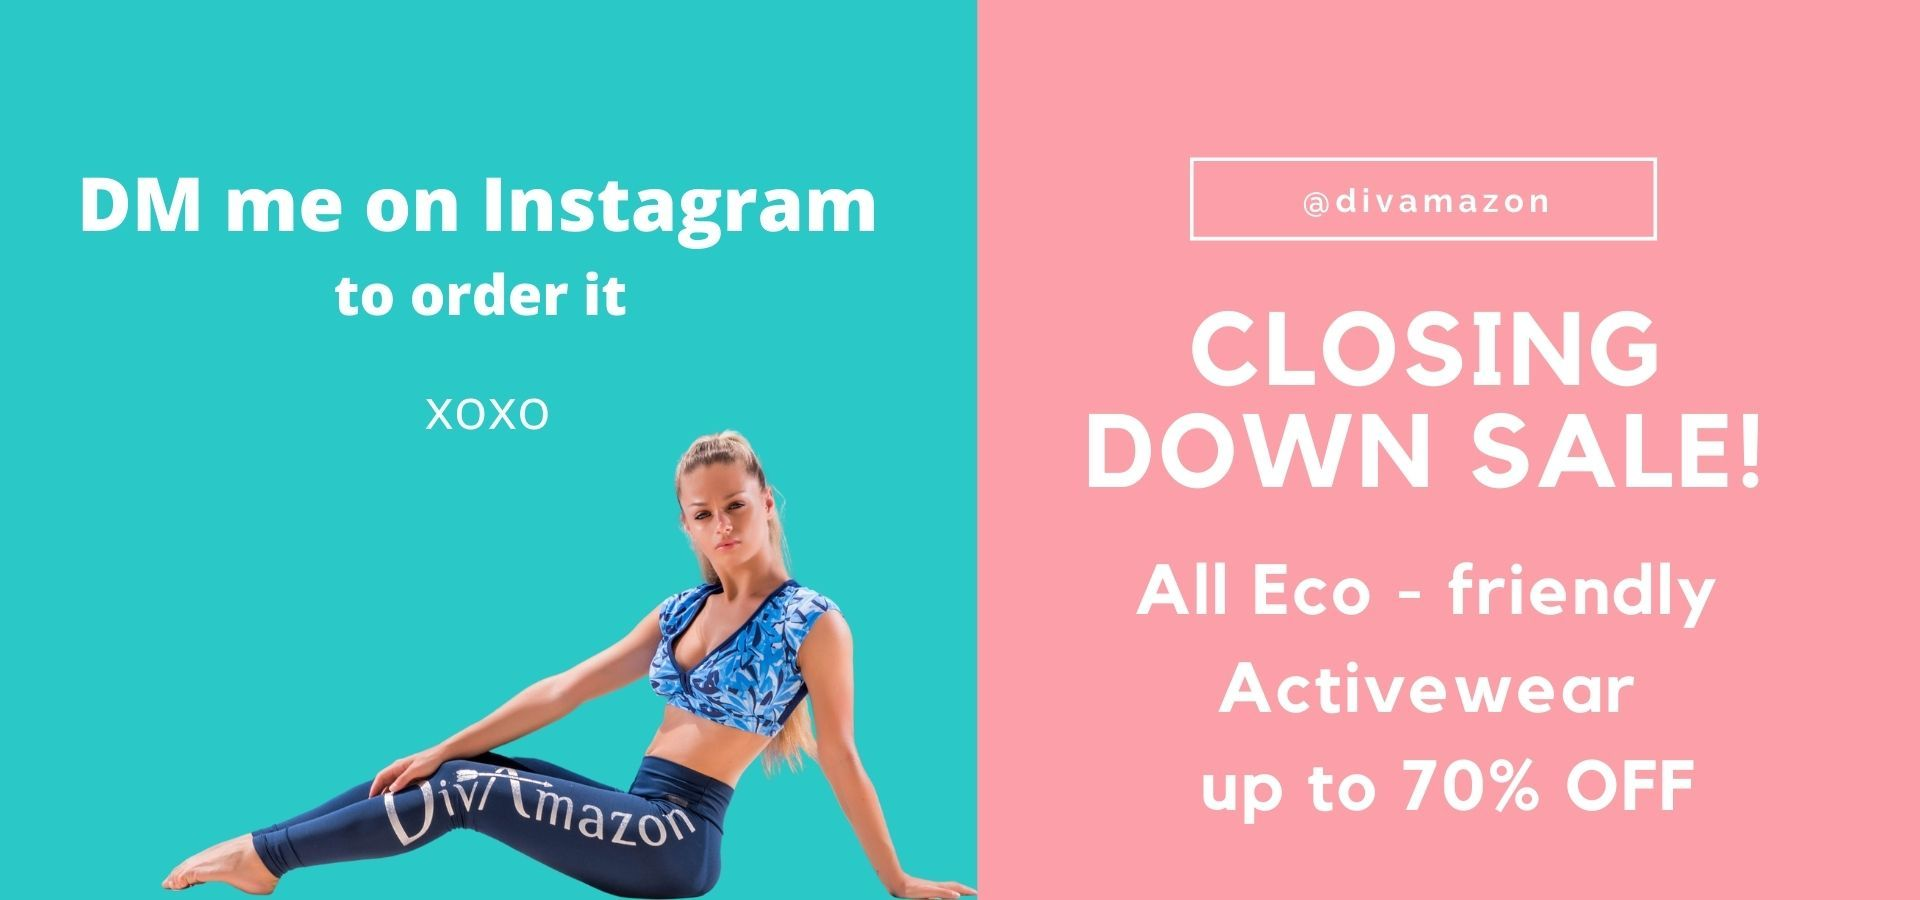 Activewear Divamazon